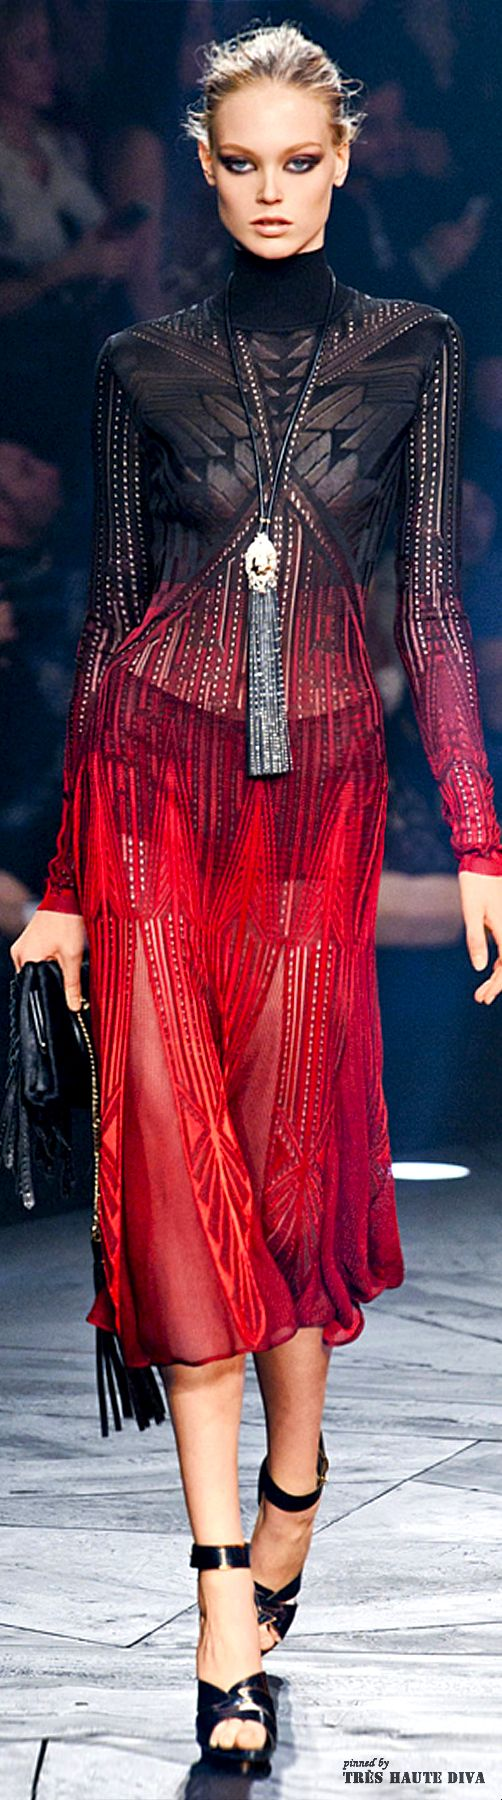 Roberto Cavalli autumn/winter 14